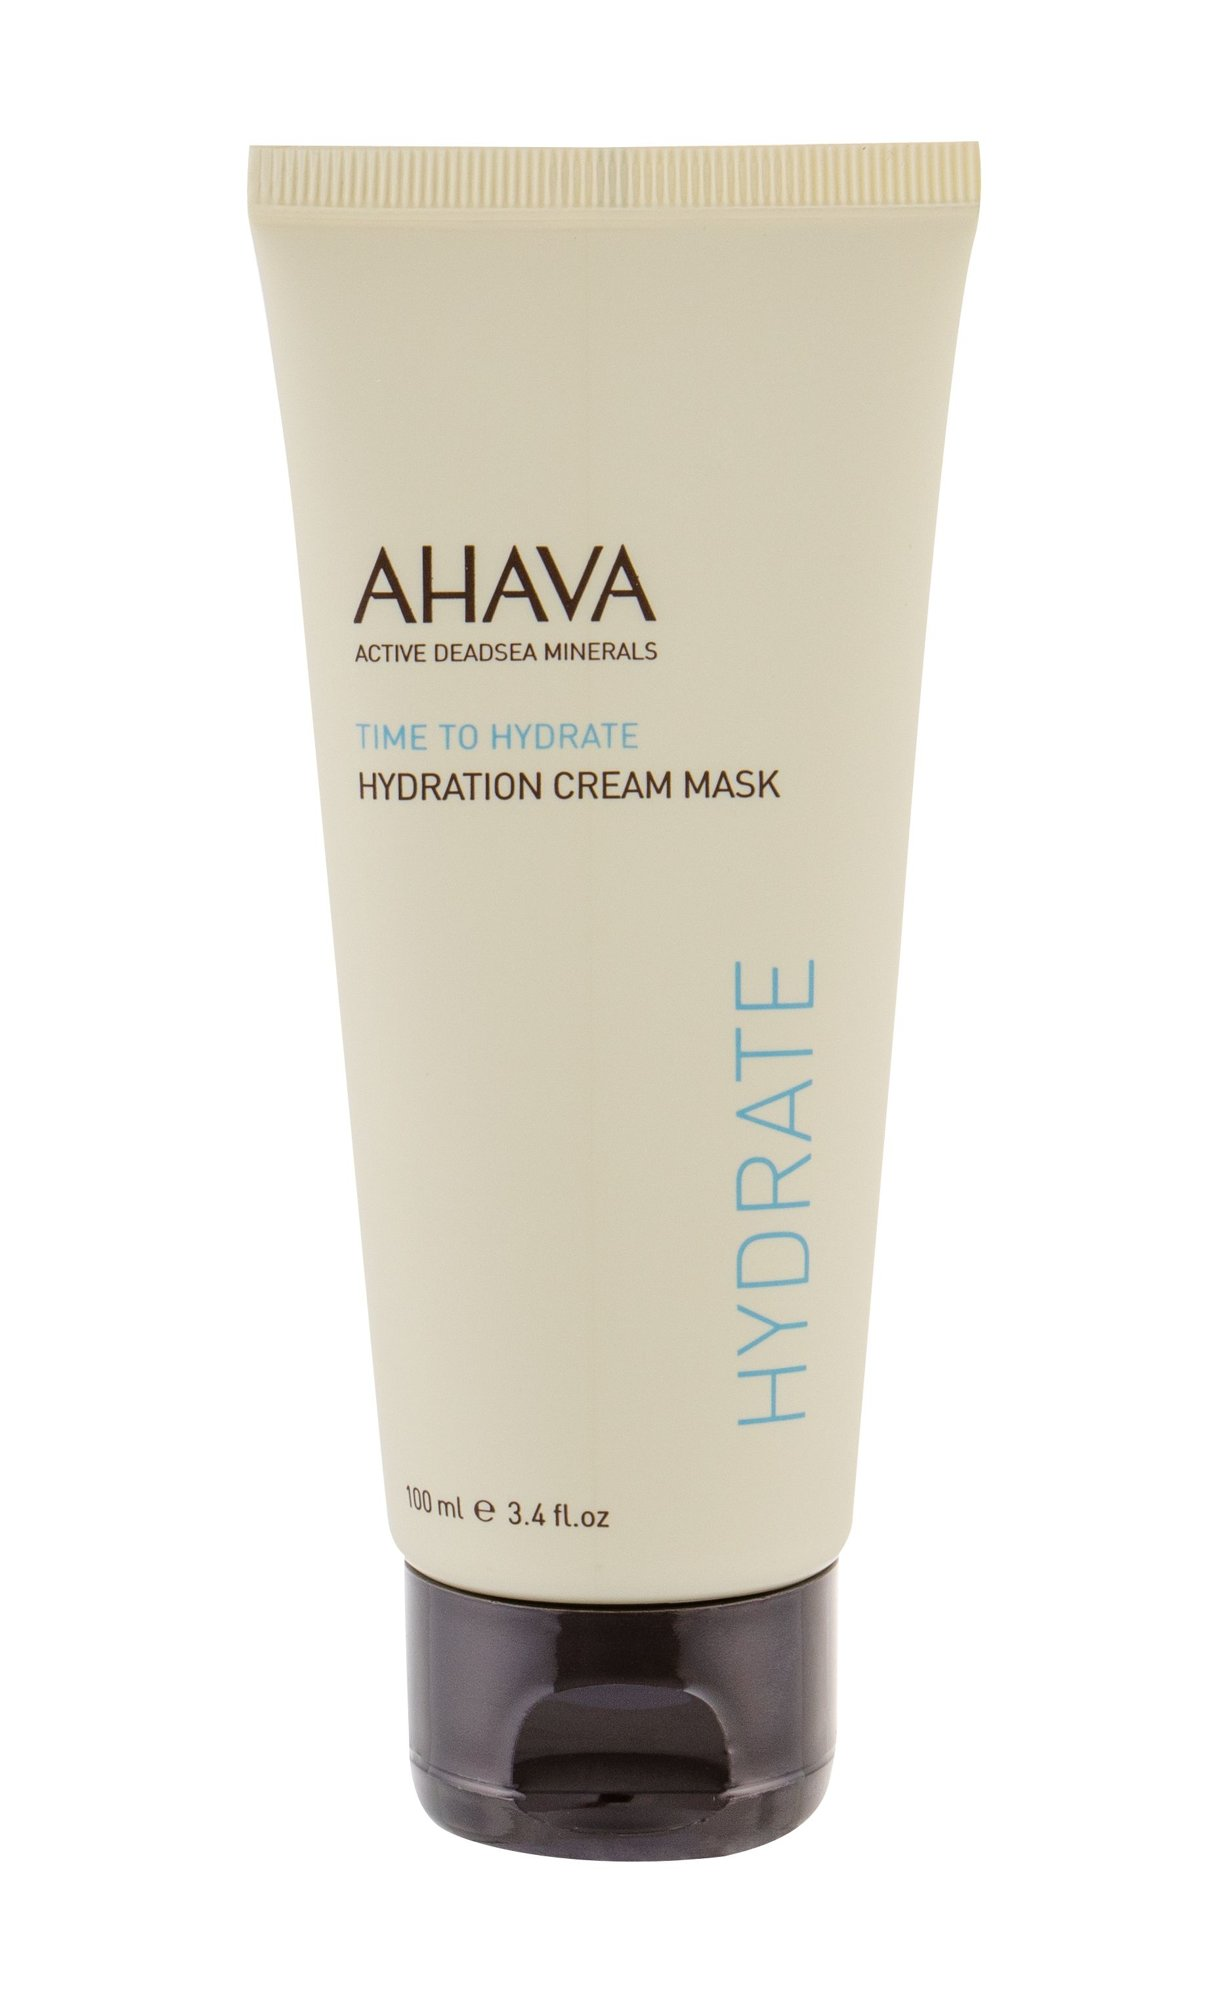 AHAVA Essentials Face Mask 100ml  Time To Hydrate